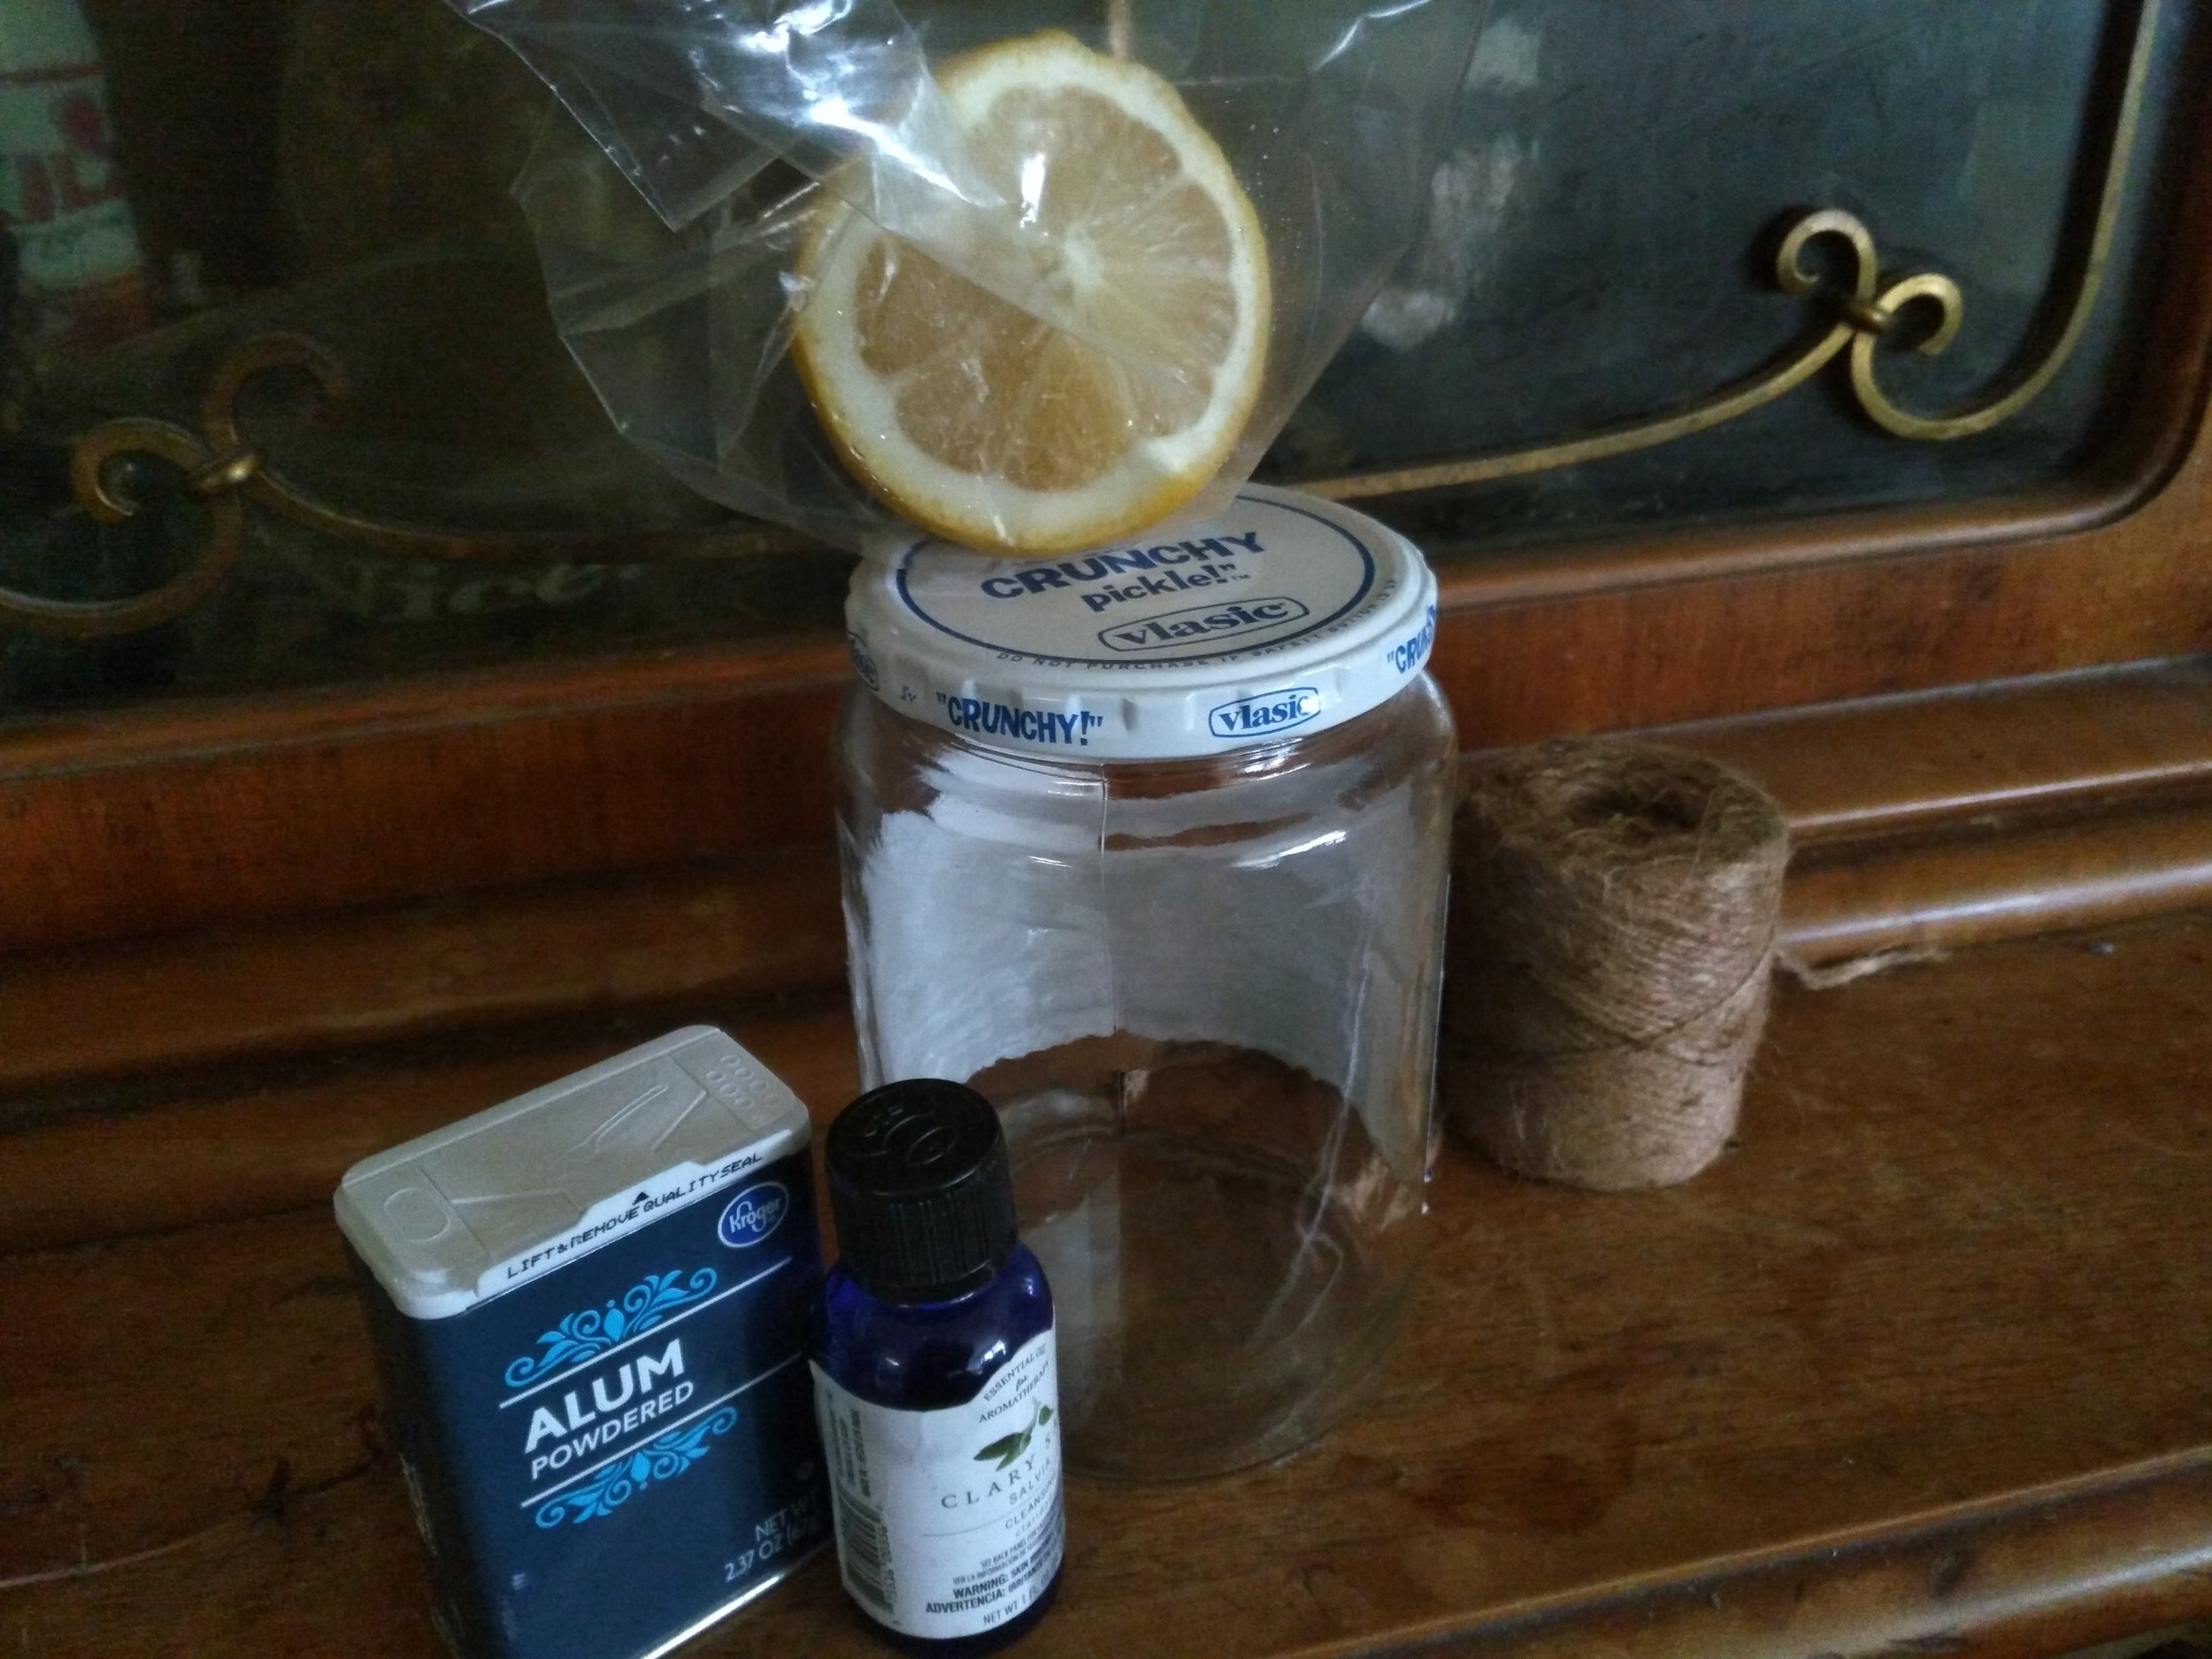 Powdered alum to ward off negative energies, my favorite store-bought fragrance oil (Clary Sage), half a sliced lemon, a Mason jar to hold the wash, and twine to decorate the jar. :)